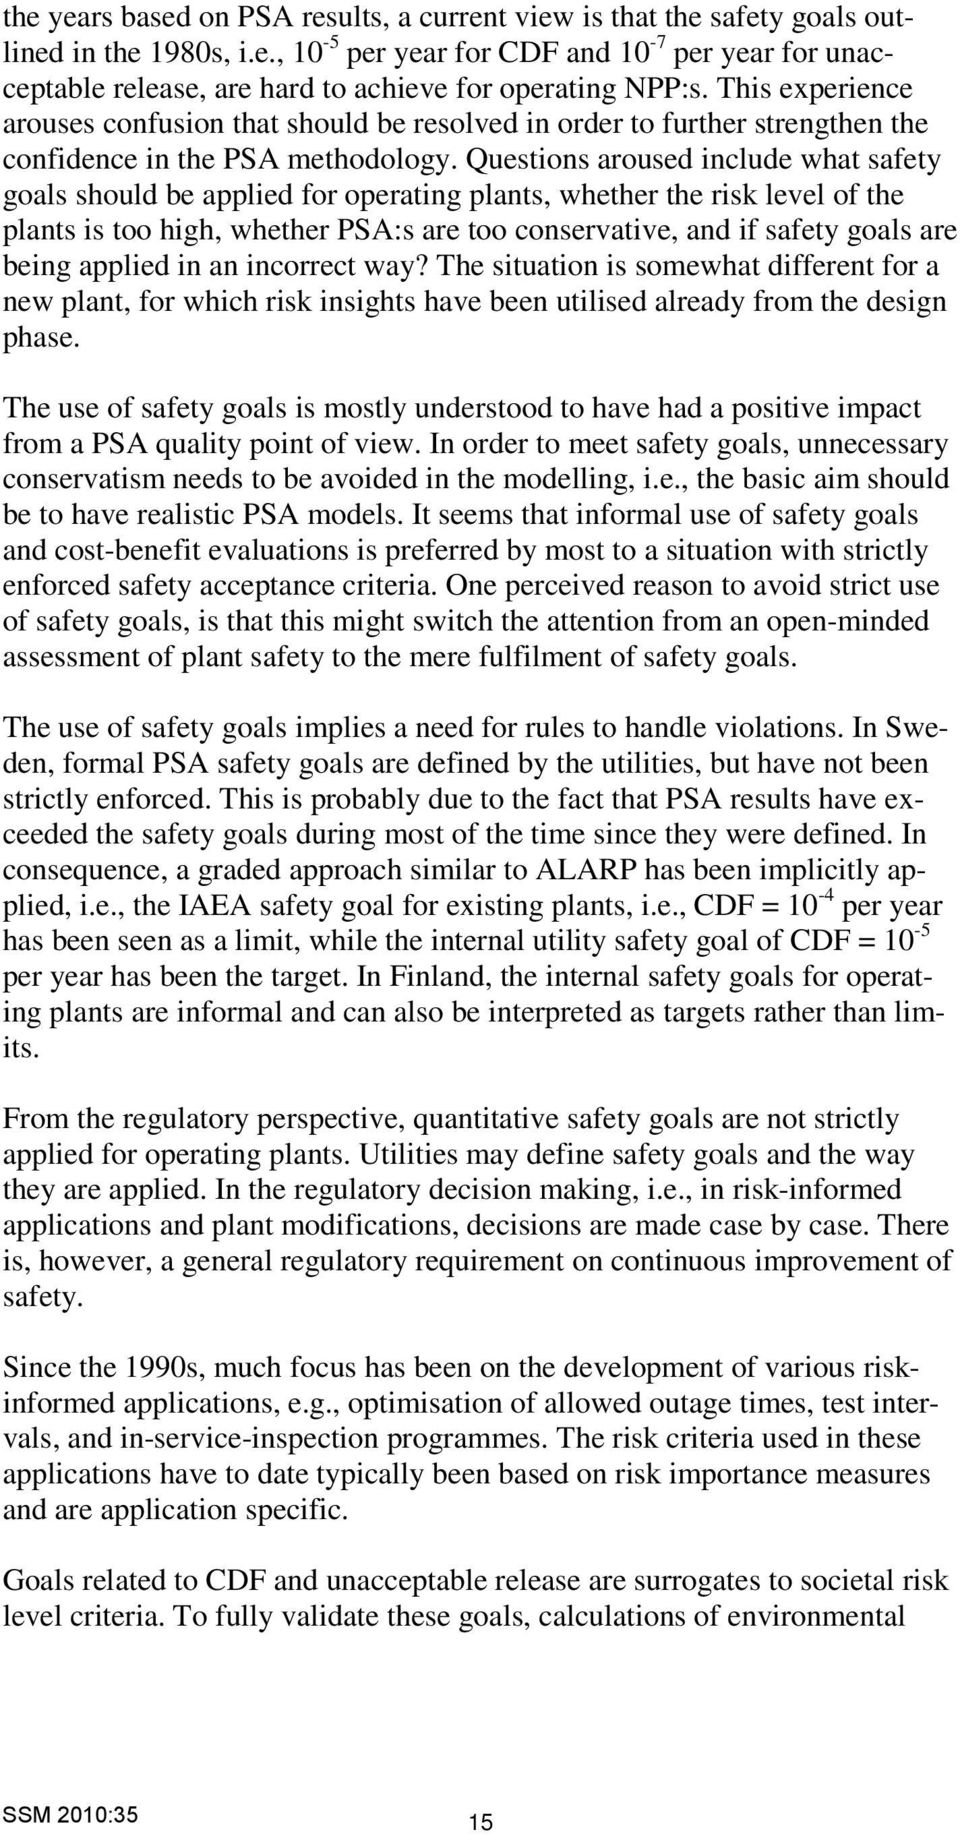 Questions aroused include what safety goals should be applied for operating plants, whether the risk level of the plants is too high, whether PSA:s are too conservative, and if safety goals are being